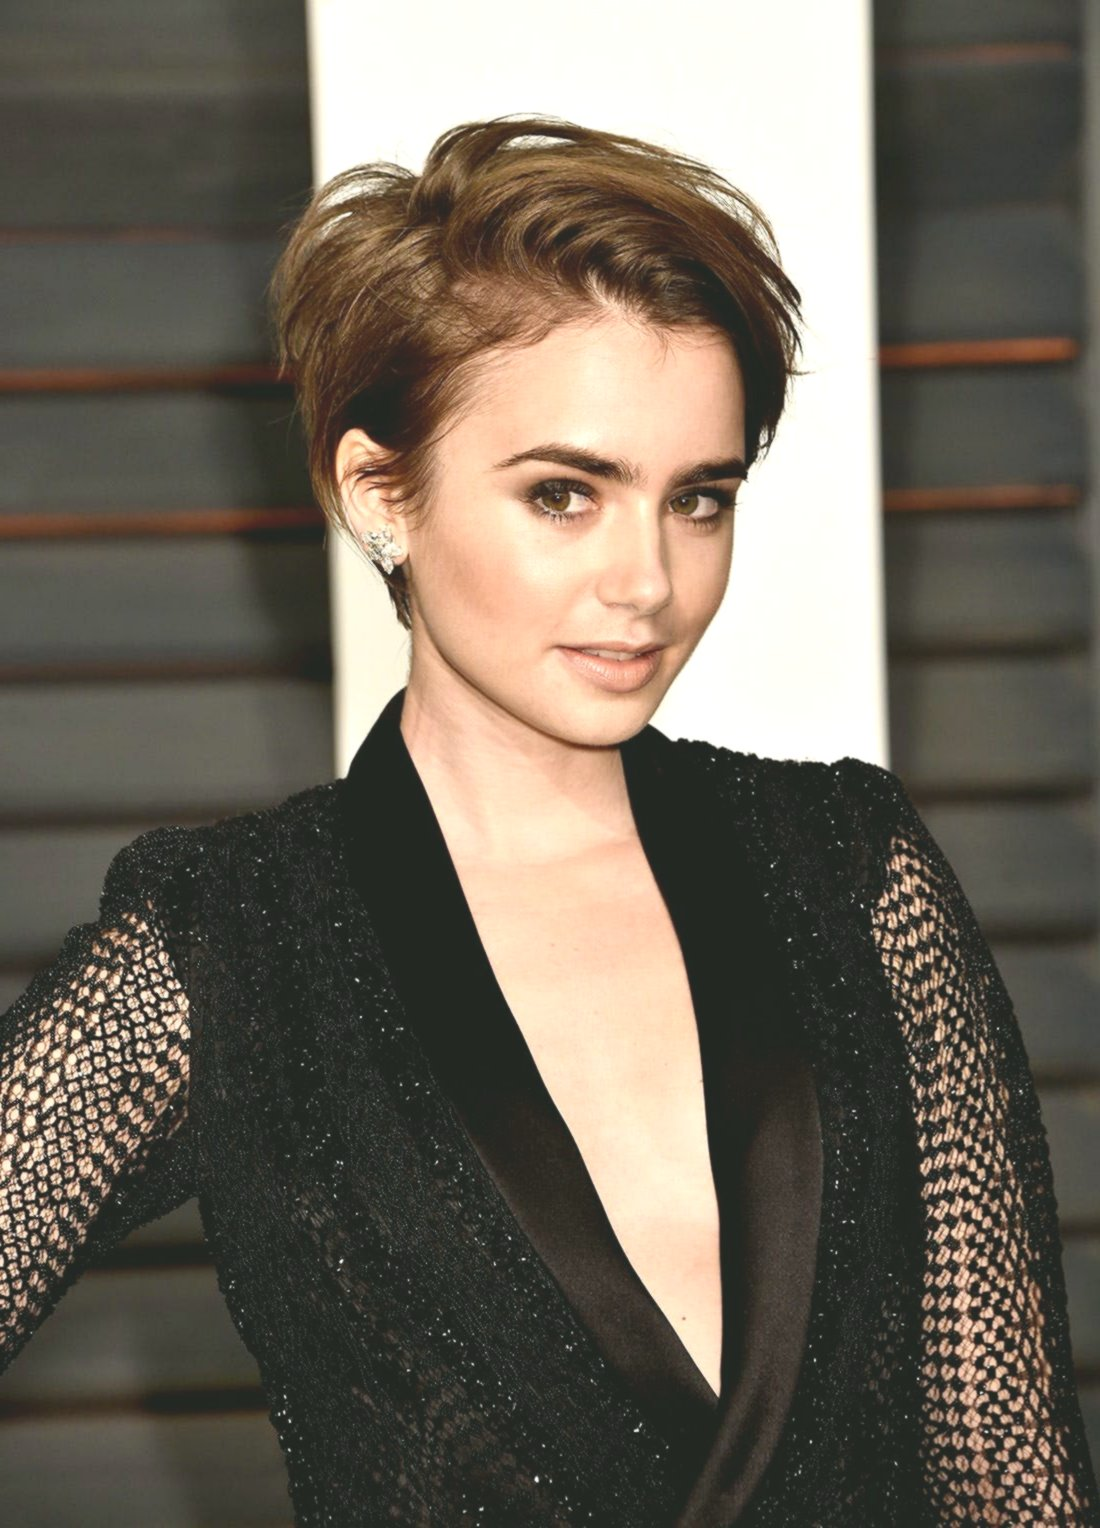 new current short hairstyles background-Stylish Current short hairstyles construction